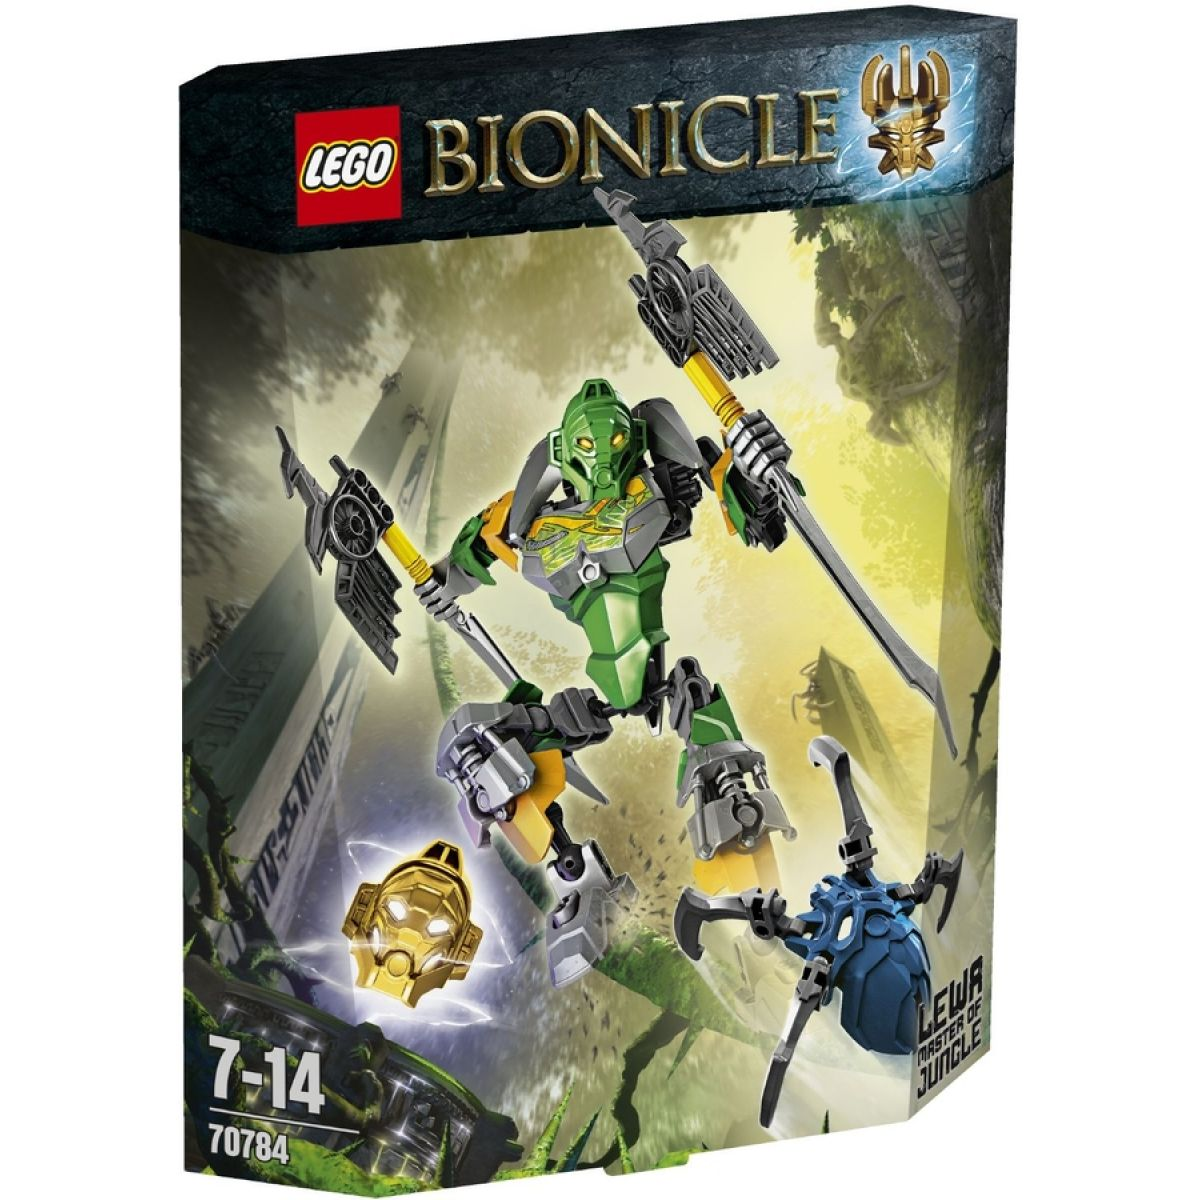 LEGO Bionicle 70784 - Lewa – Pán džungle